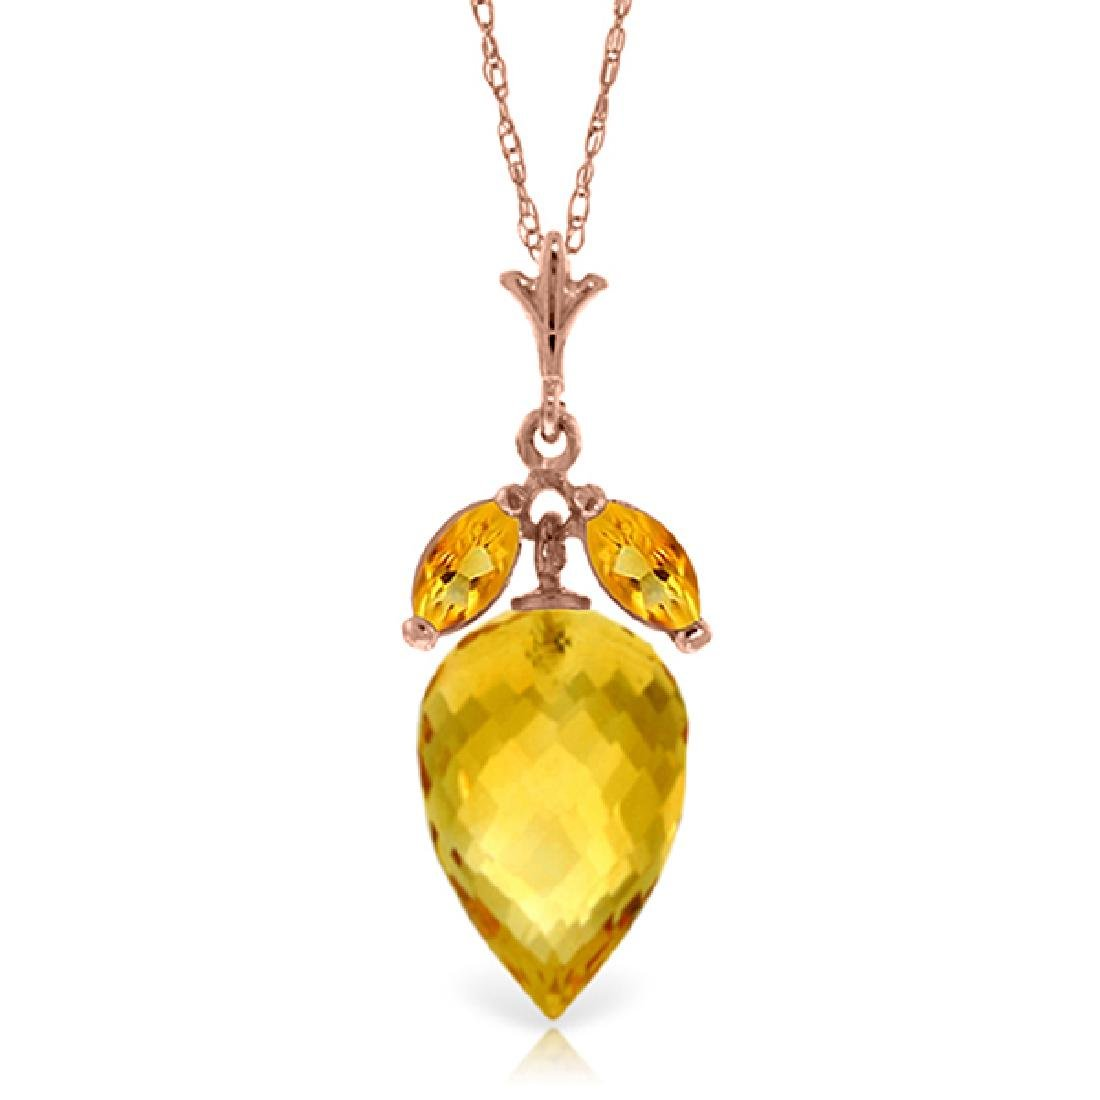 Genuine 10 ctw Citrine Necklace Jewelry 14KT Rose Gold